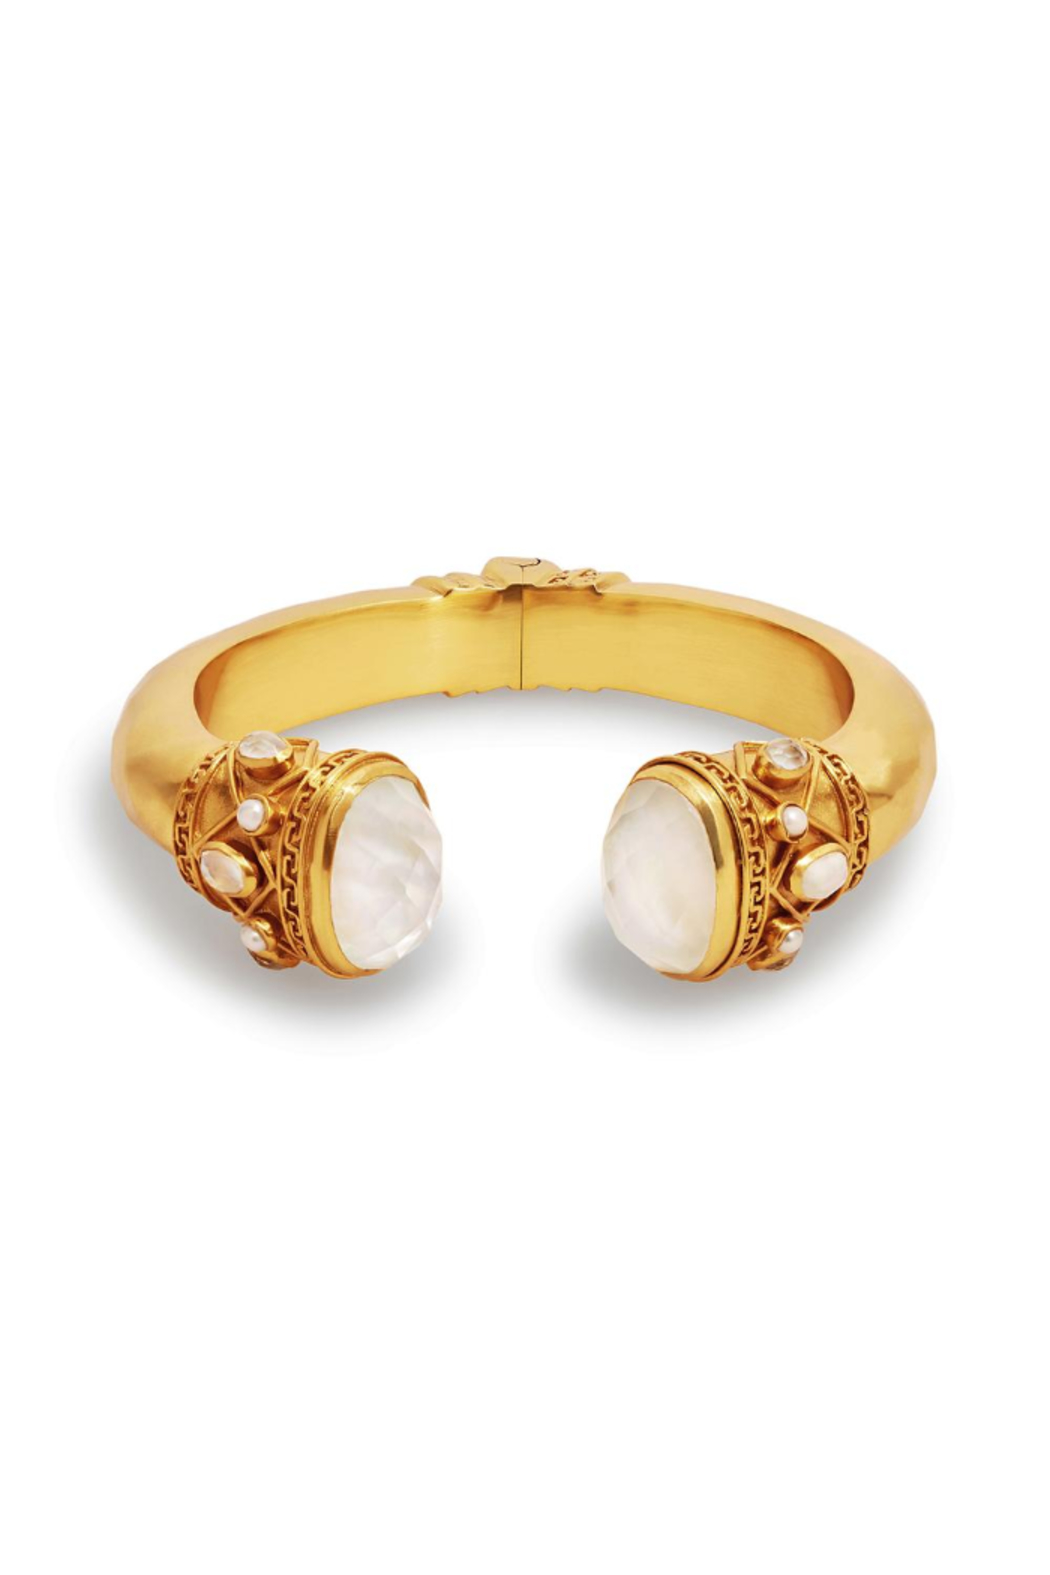 The Birds Nest Savannah Hinge Cuff Gold Iridescent Clear Crystal & Pearl Accents - Main Image